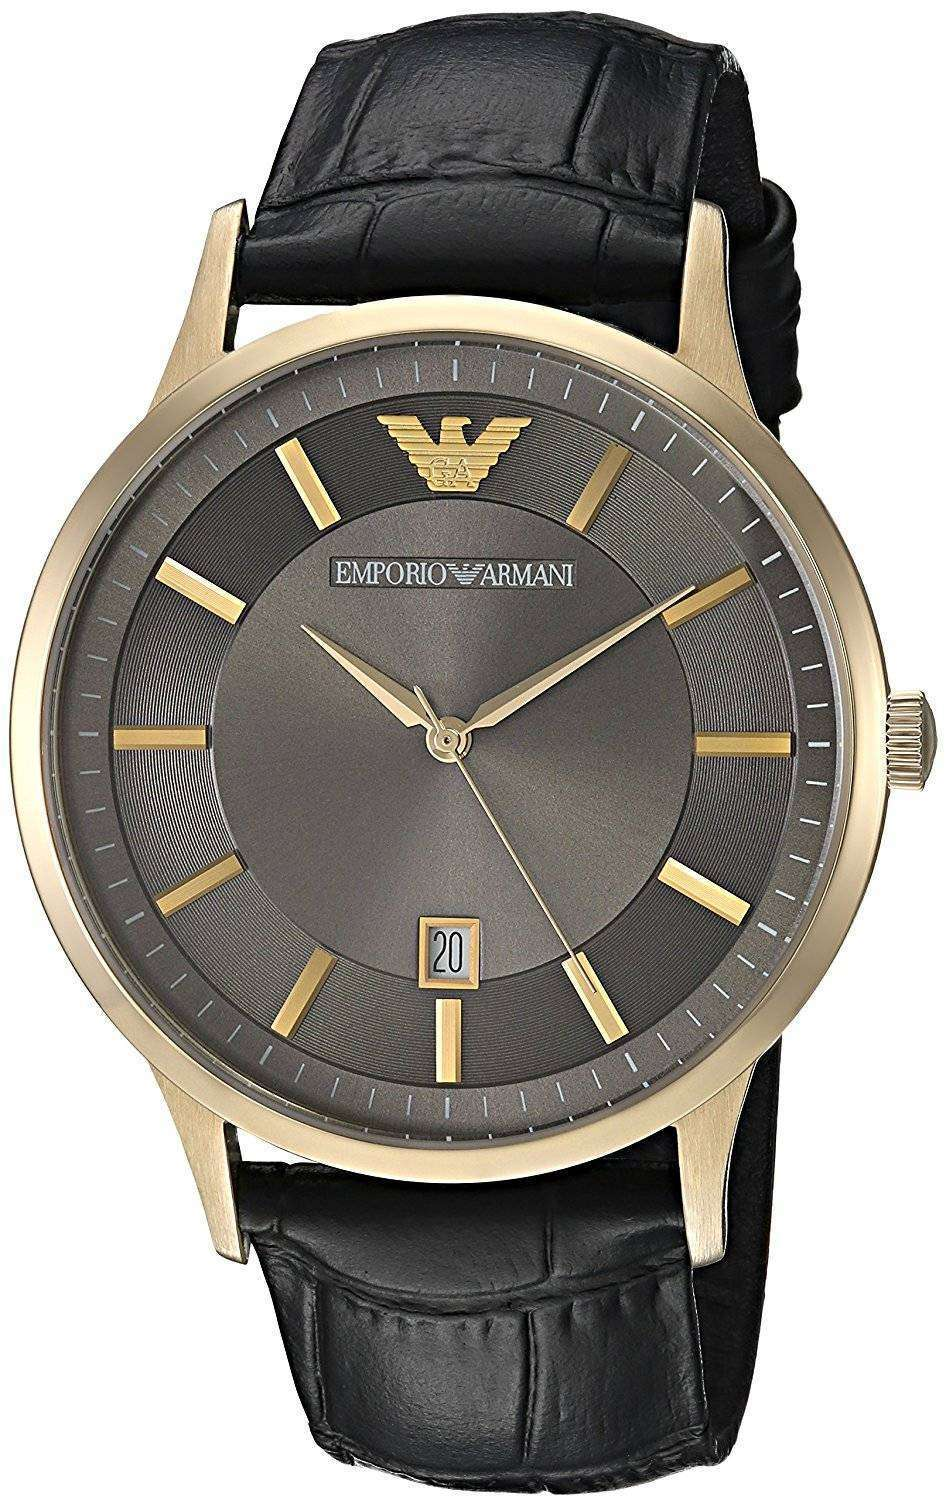 Emporio Armani Classic Quartz AR11049 Men's Watch